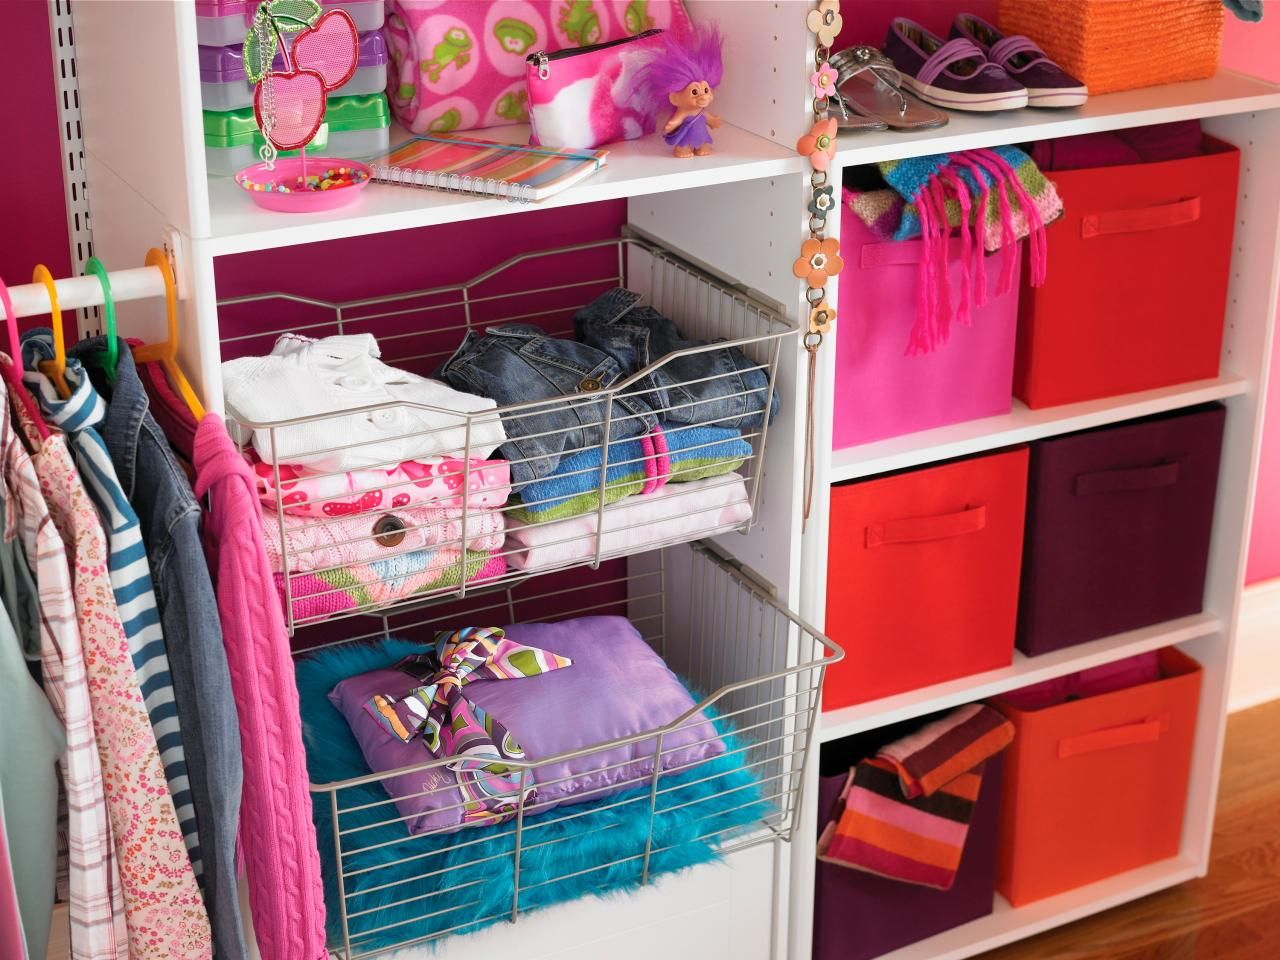 HGTV Remodels: Expert Tips On Small Closet Organization Plus Pictures And  Ideas For Transforming A